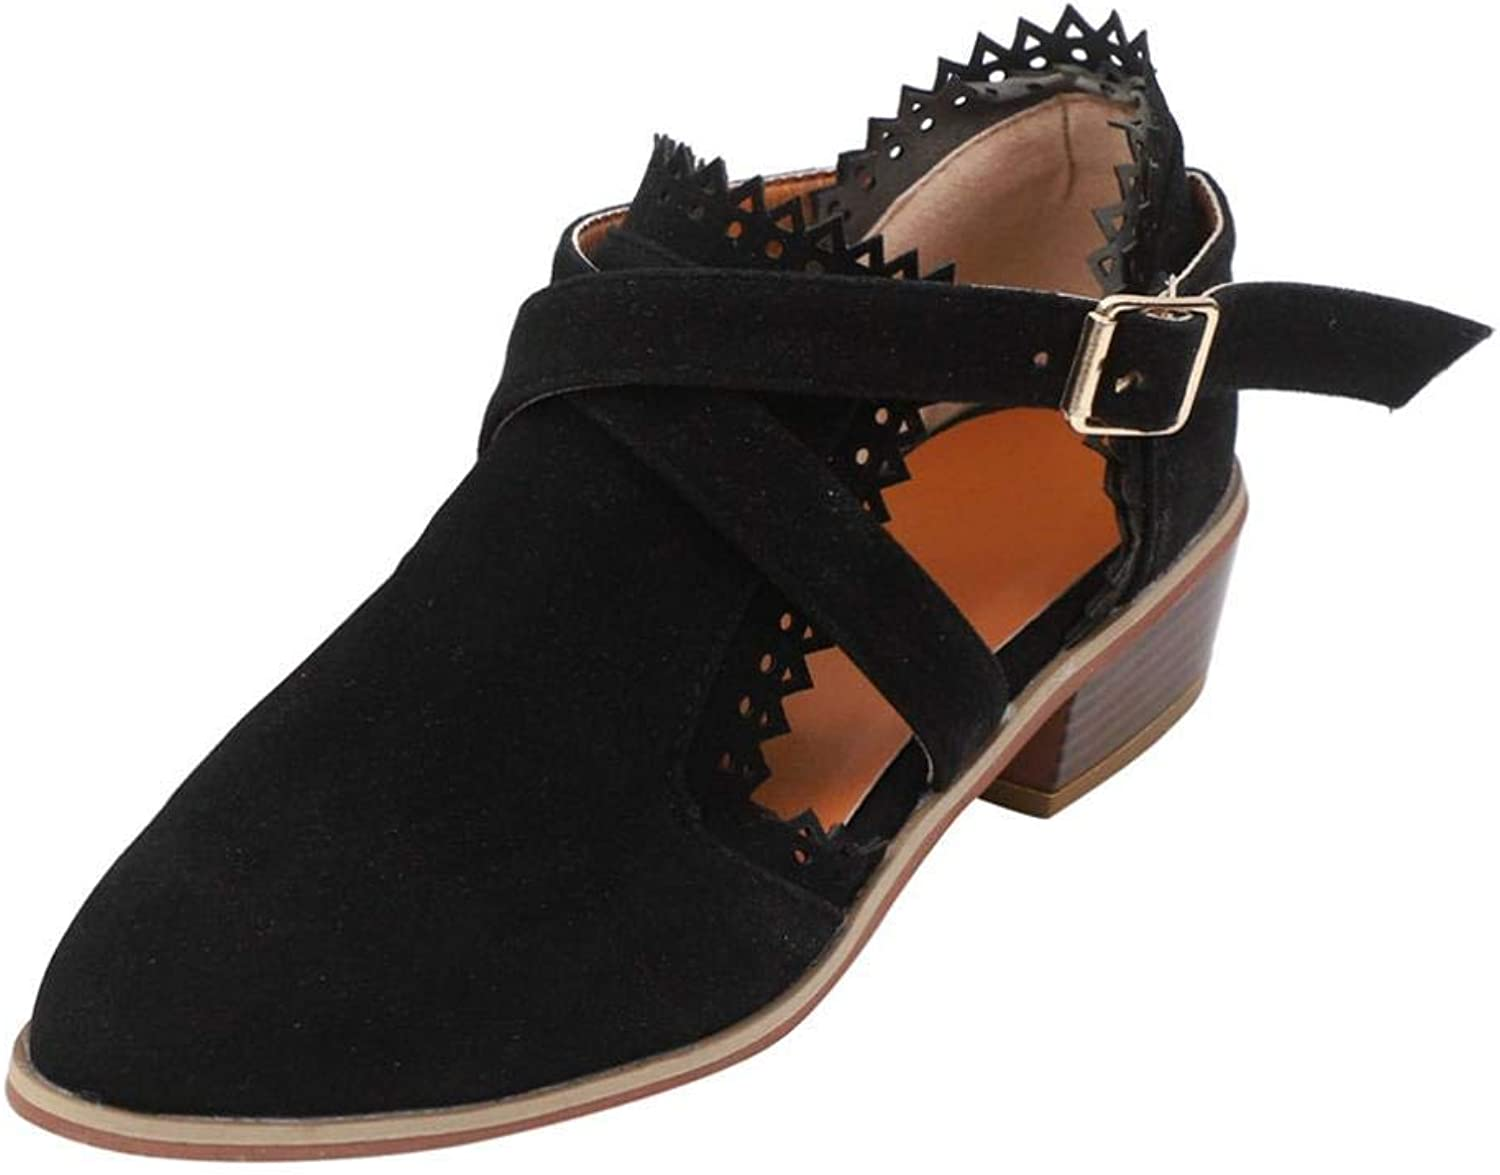 SUNNY Store Women's Ankle Bootie Low Heel Cut-Out Side Design